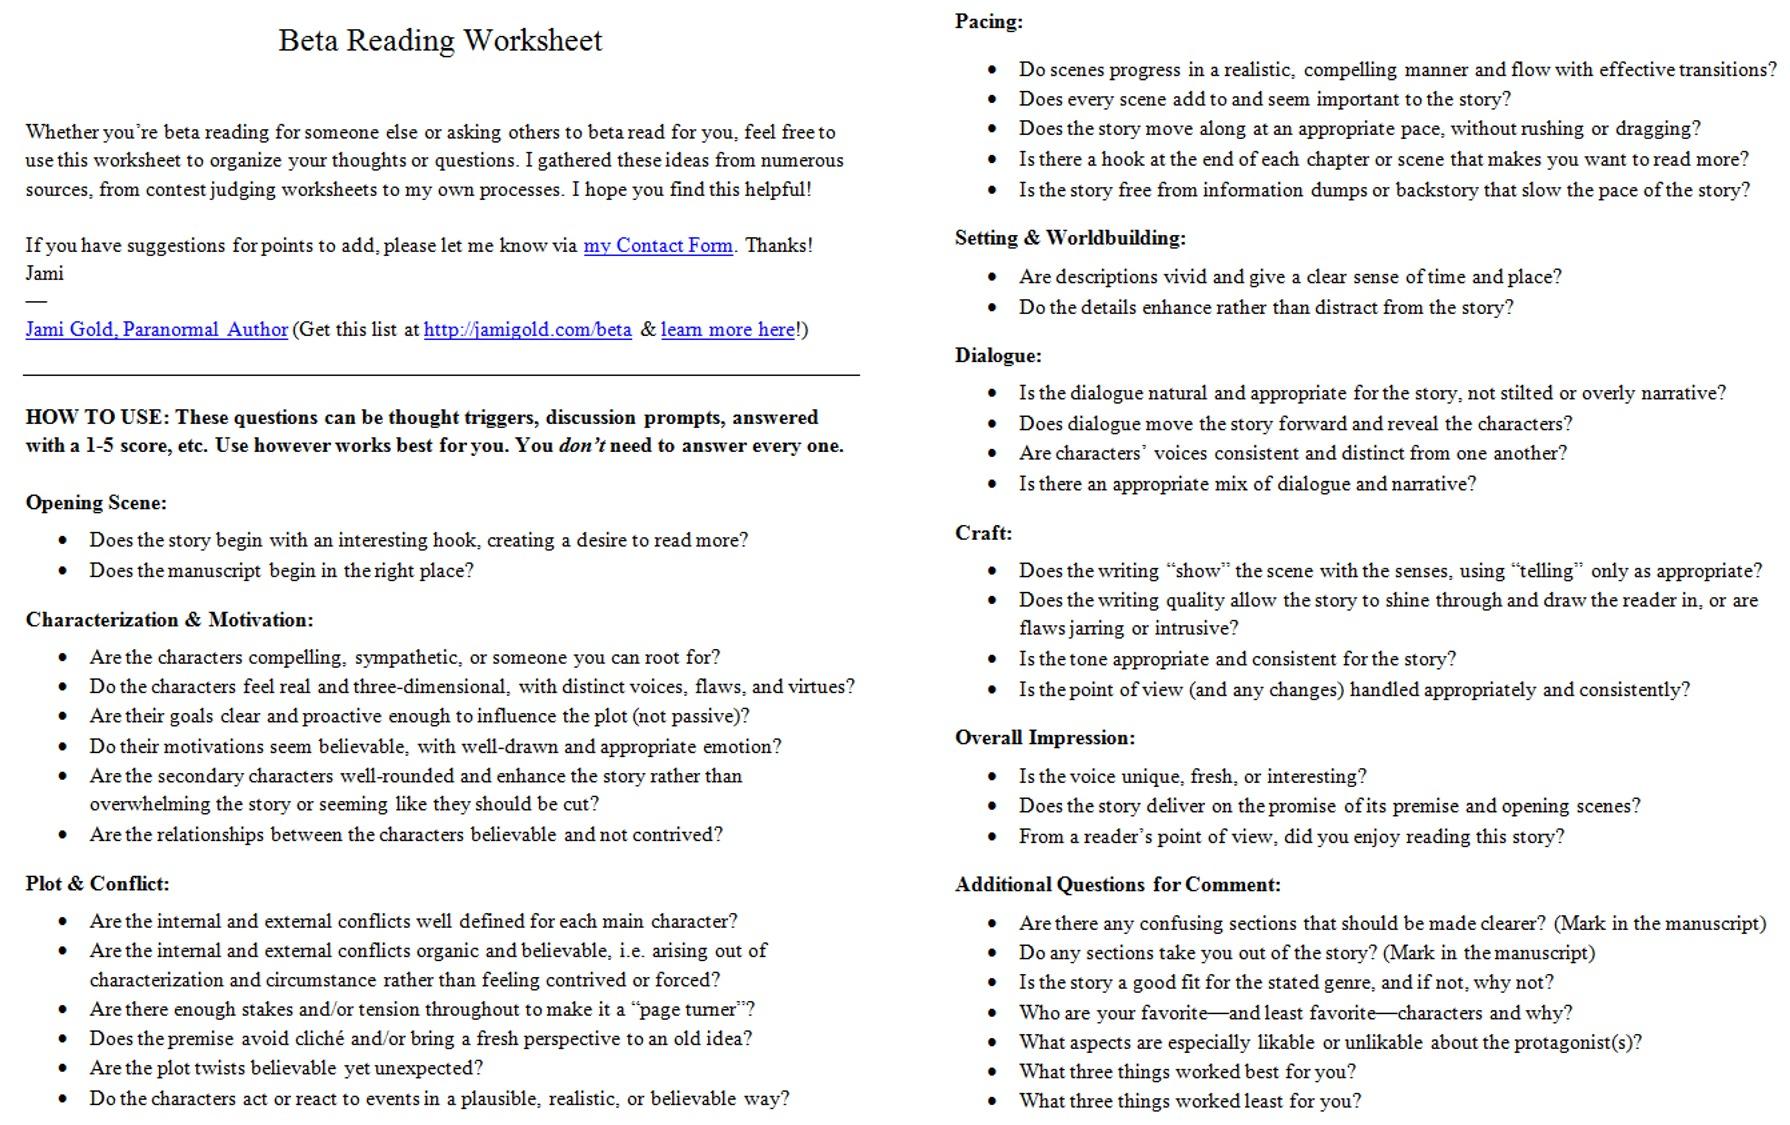 Proatmealus  Scenic Worksheets For Writers  Jami Gold Paranormal Author With Engaging Screen Shot Of The Twopage Beta Reading Worksheet With Comely Geography Worksheets For Rd Grade Also Preschool Grammar Worksheets In Addition D Shapes And Their Properties Worksheets And Tens And Units Worksheets As Well As Subtraction Using Number Line Worksheets Additionally Worksheets On The Nervous System From Jamigoldcom With Proatmealus  Engaging Worksheets For Writers  Jami Gold Paranormal Author With Comely Screen Shot Of The Twopage Beta Reading Worksheet And Scenic Geography Worksheets For Rd Grade Also Preschool Grammar Worksheets In Addition D Shapes And Their Properties Worksheets From Jamigoldcom